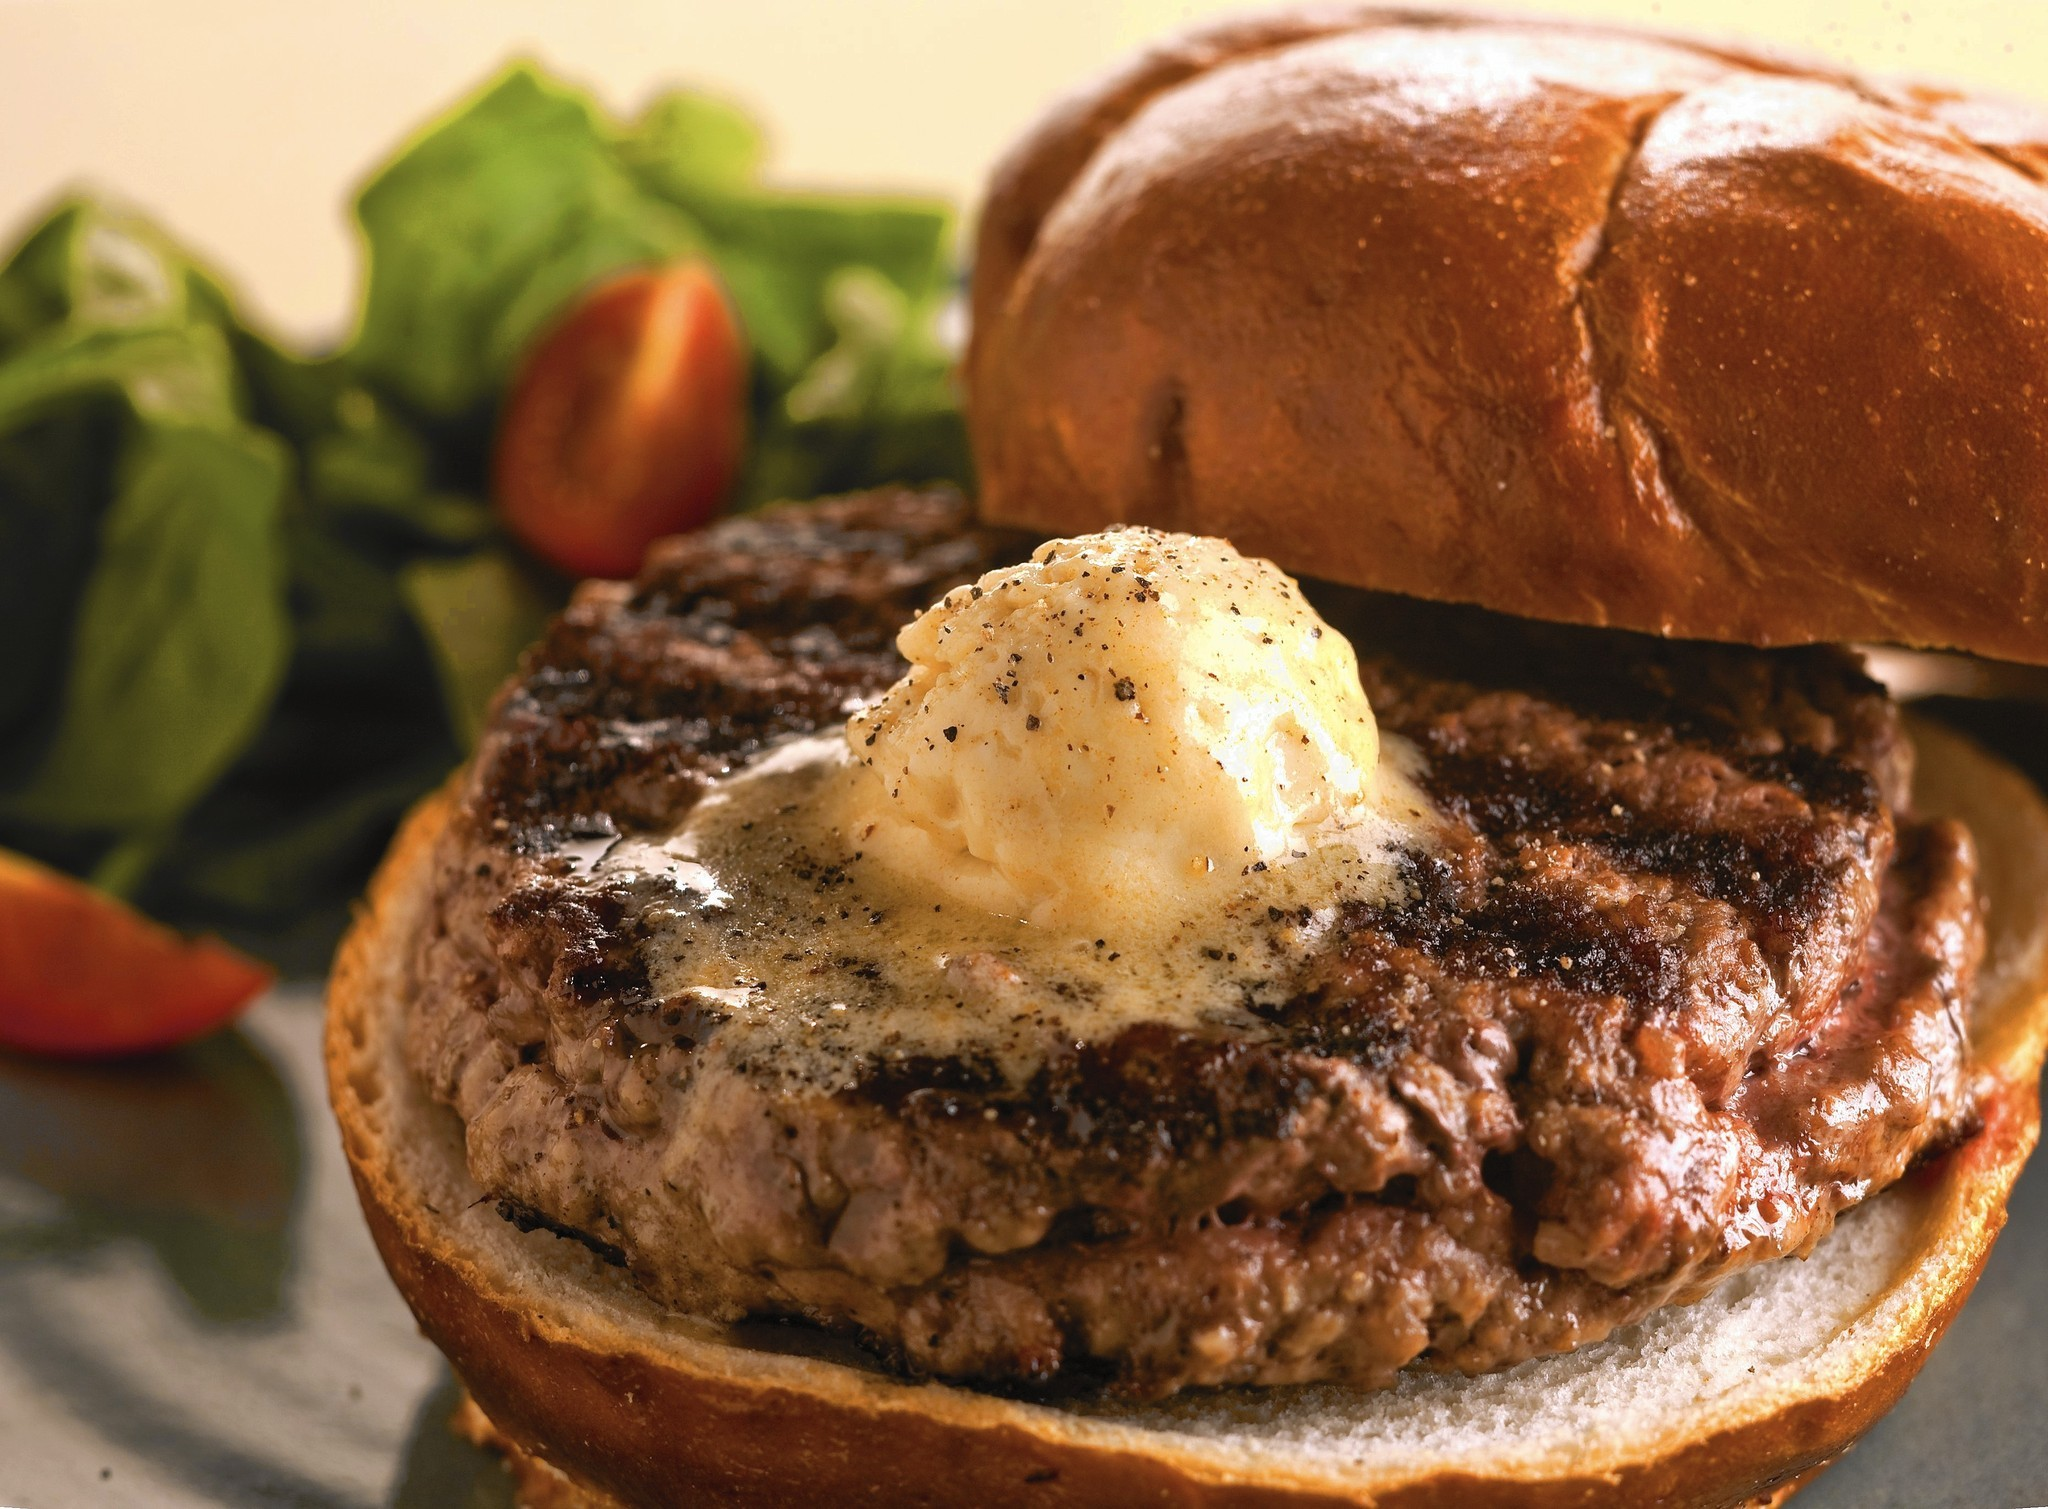 Mustard-butter burgers: How to make them and what to drink with them